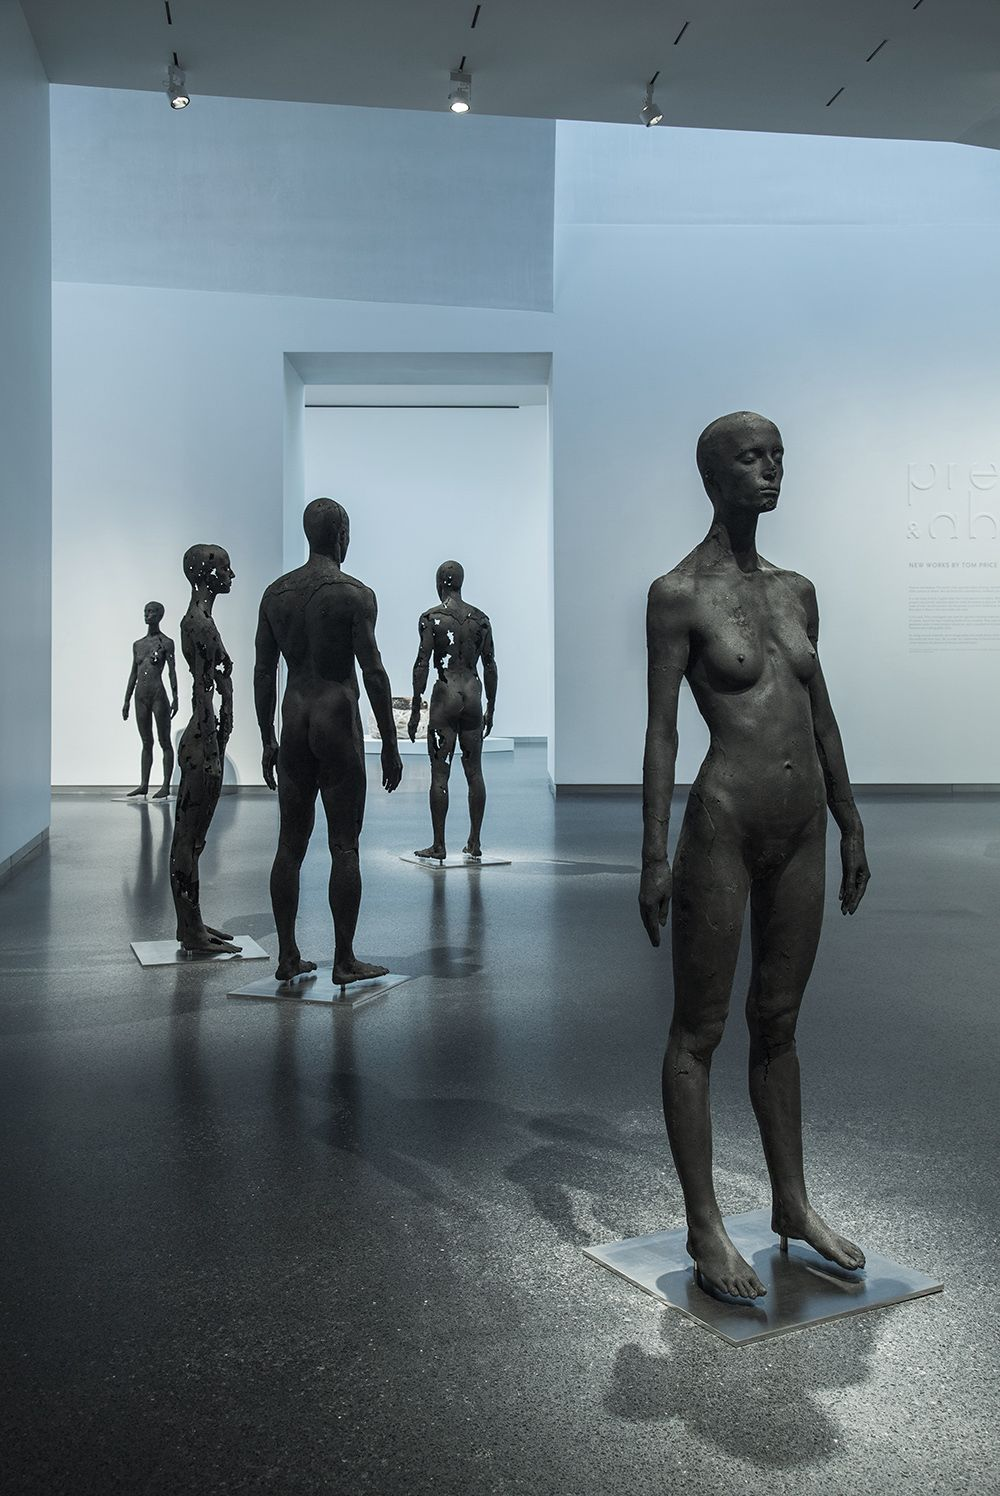 Sculpture - Tom Price - The Presence of Absence - Female (I) - detail 2